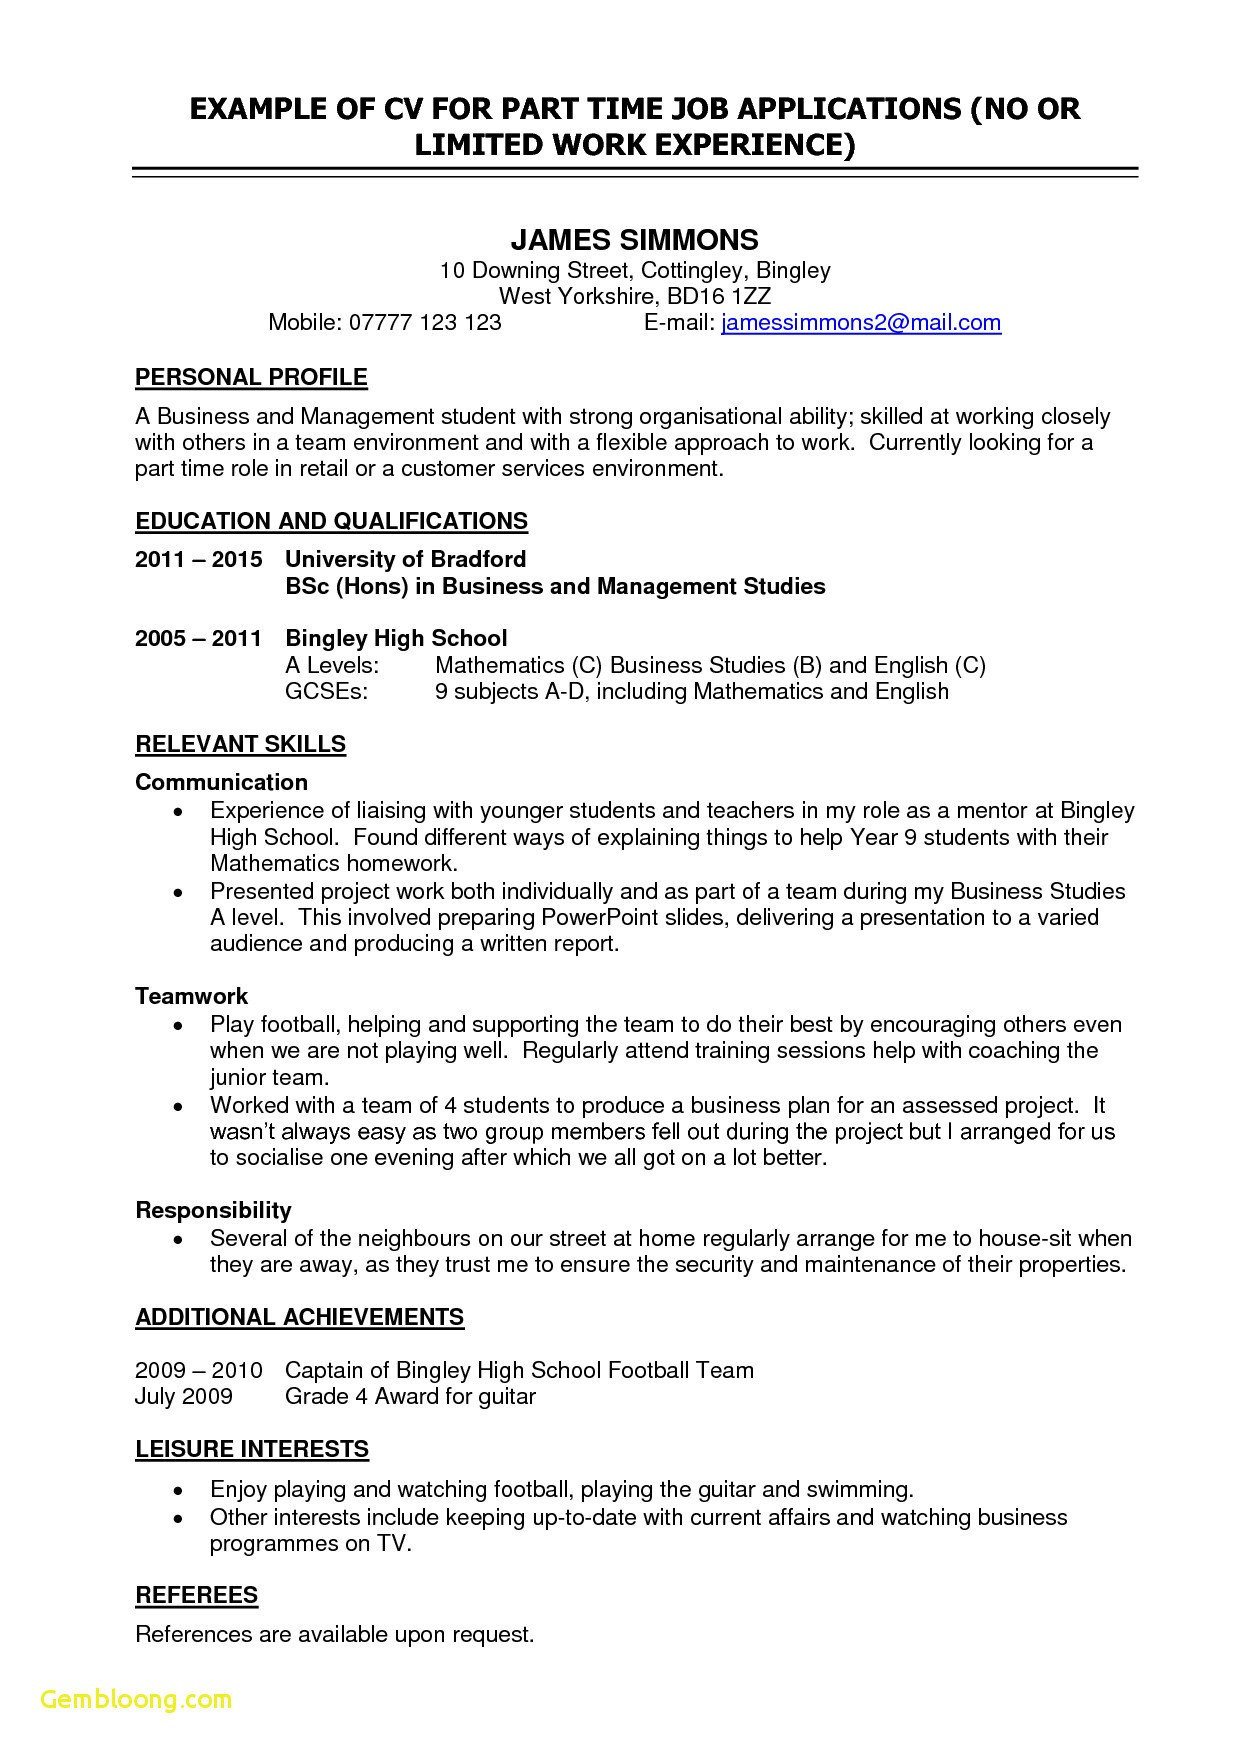 resume template for freshman college student Collection-Resume Template For College Student Example College Resume Templates Resume Outline Examples Unique Od 4-n